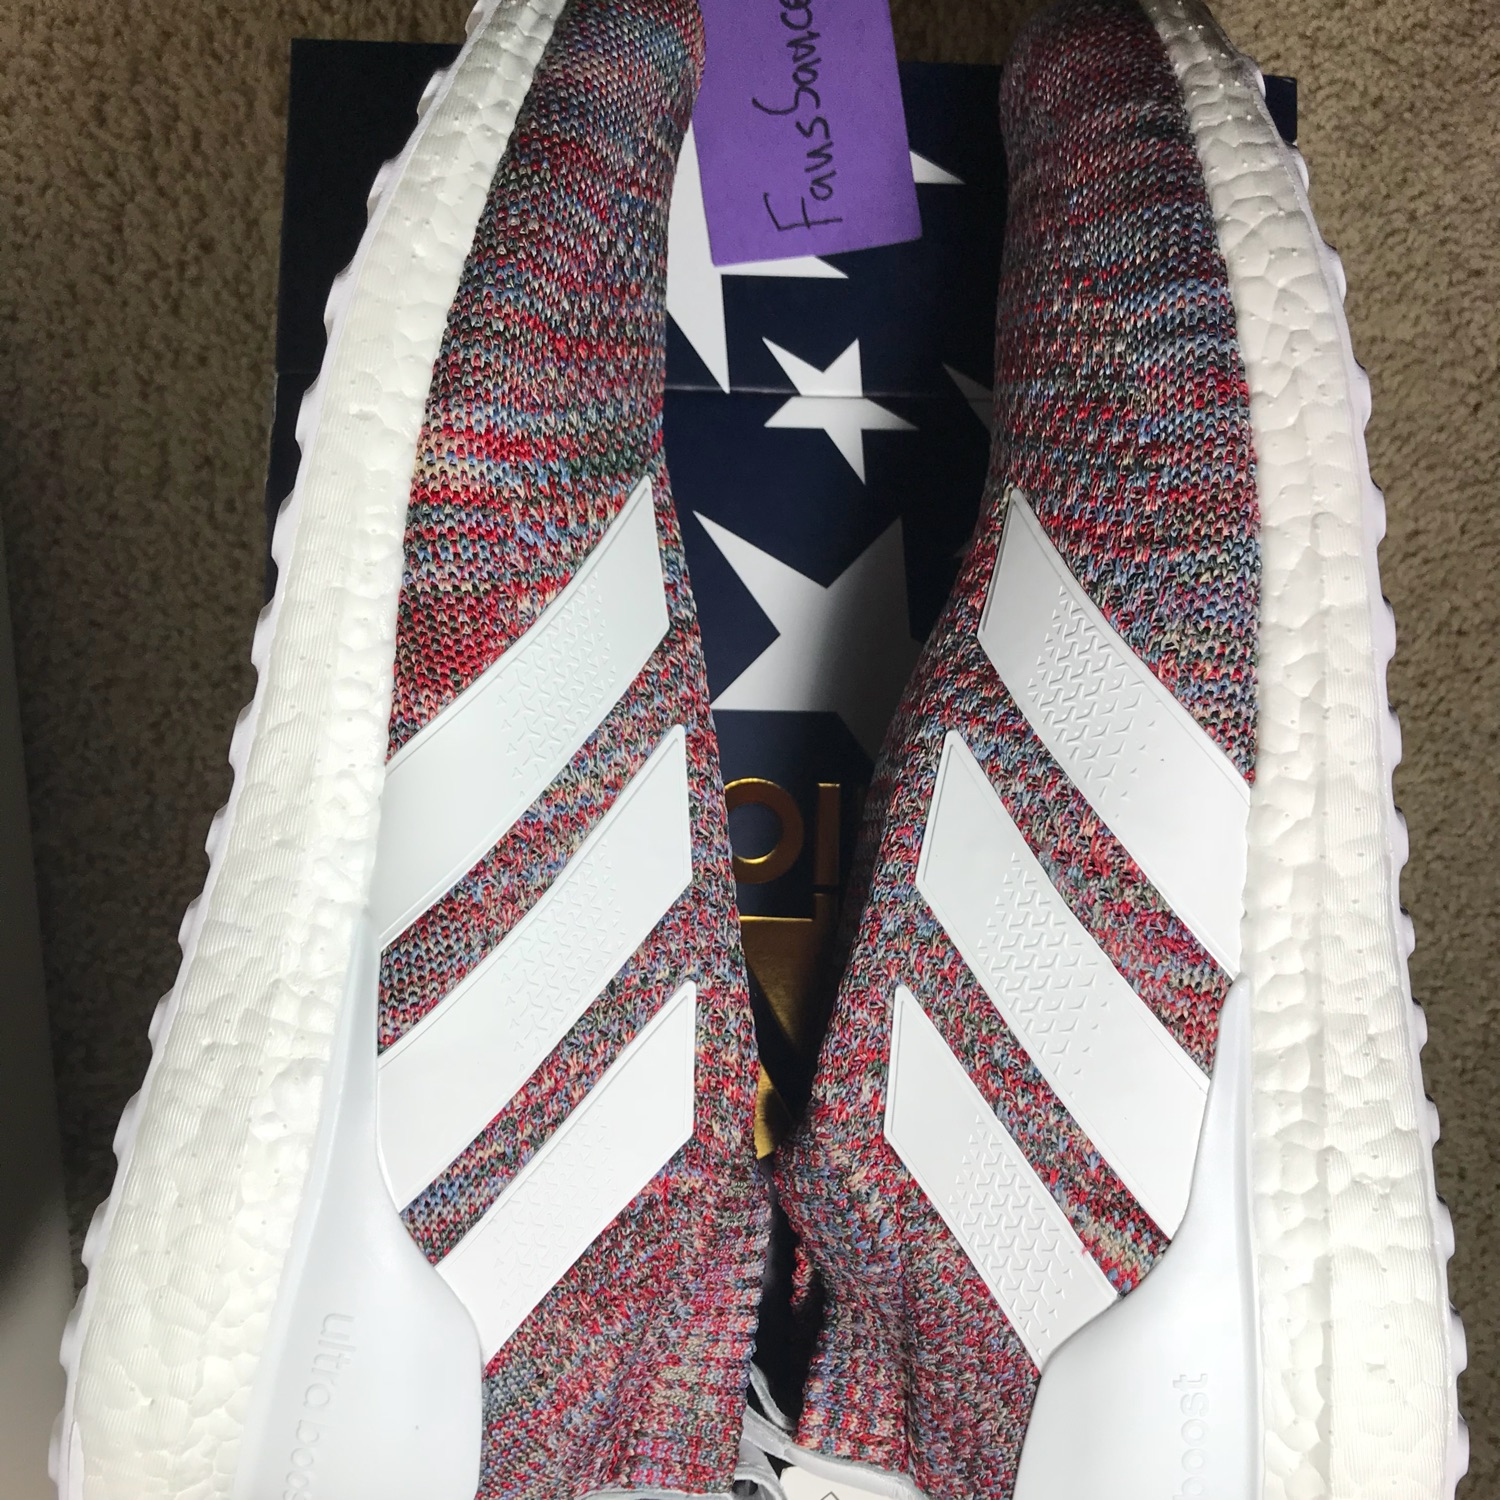 san francisco 989d5 62748 Kith X Adidas Copa Ace 16+ Purecontrol Ultra Boost